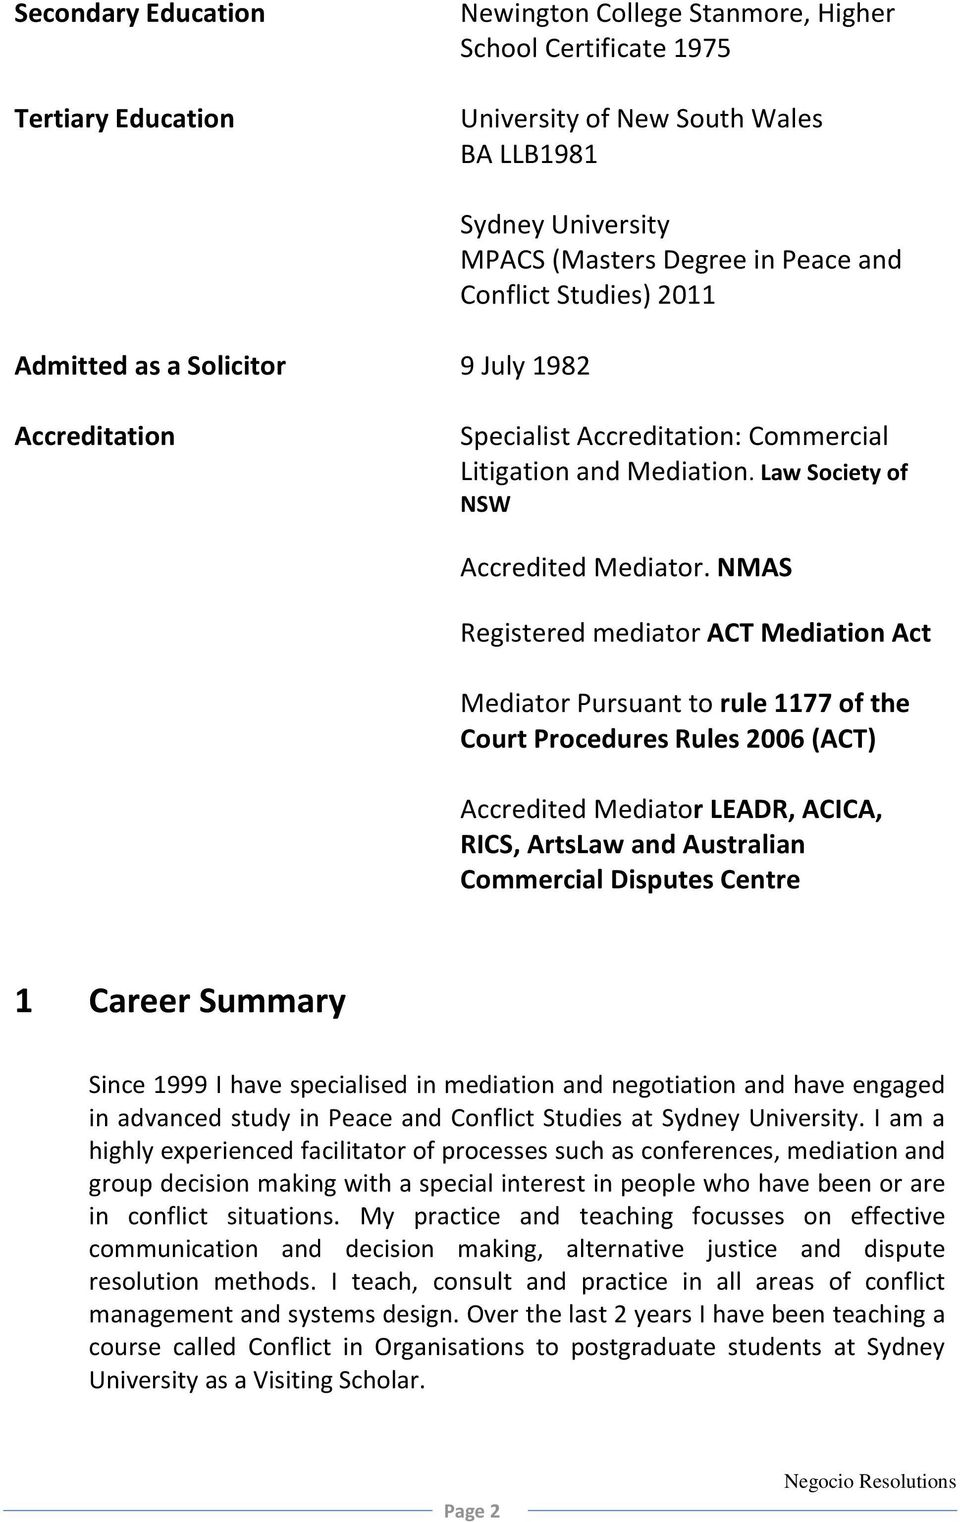 NMAS Registered mediator ACT Mediation Act Mediator Pursuant to rule 1177 of the Court Procedures Rules 2006 (ACT) Accredited Mediator LEADR, ACICA, RICS, ArtsLaw and Australian Commercial Disputes